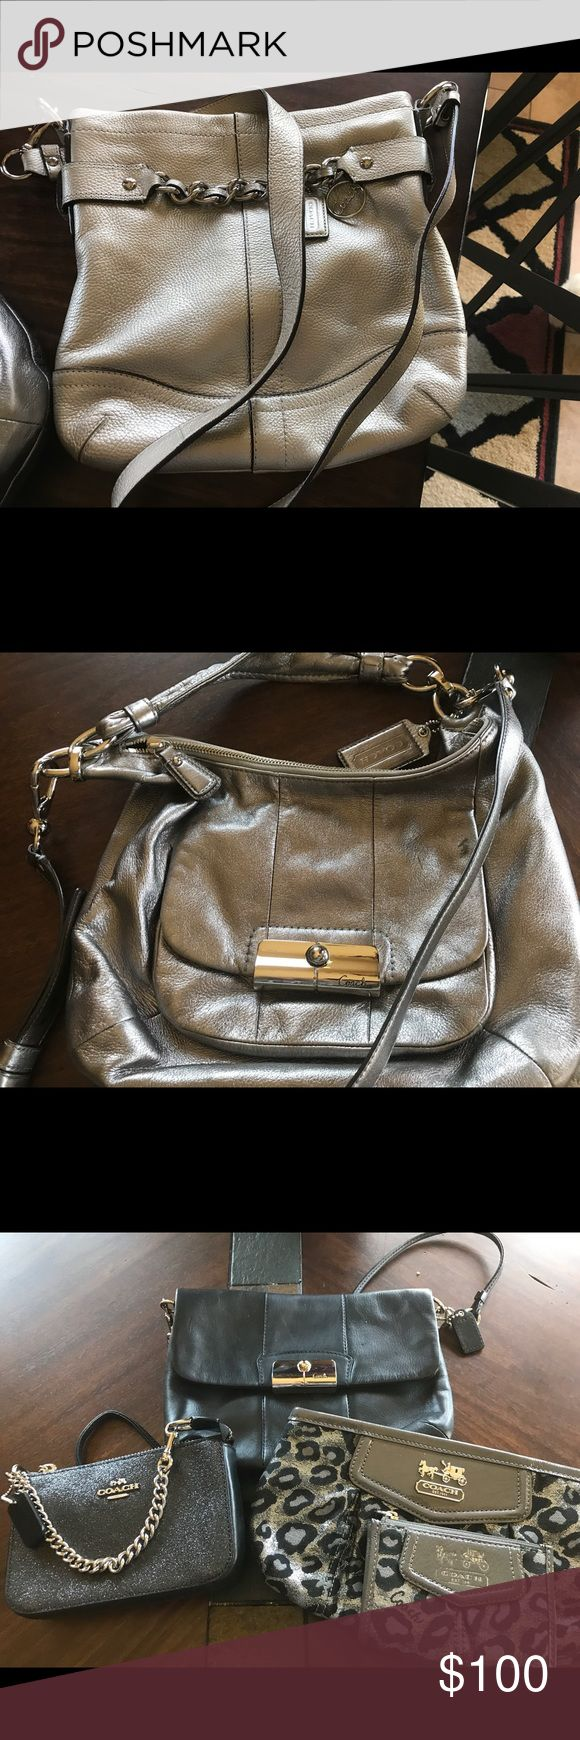 Selling almost new Coach Handbags and wallets Price is from $25 to $100 Coach Bags Crossbody Bags